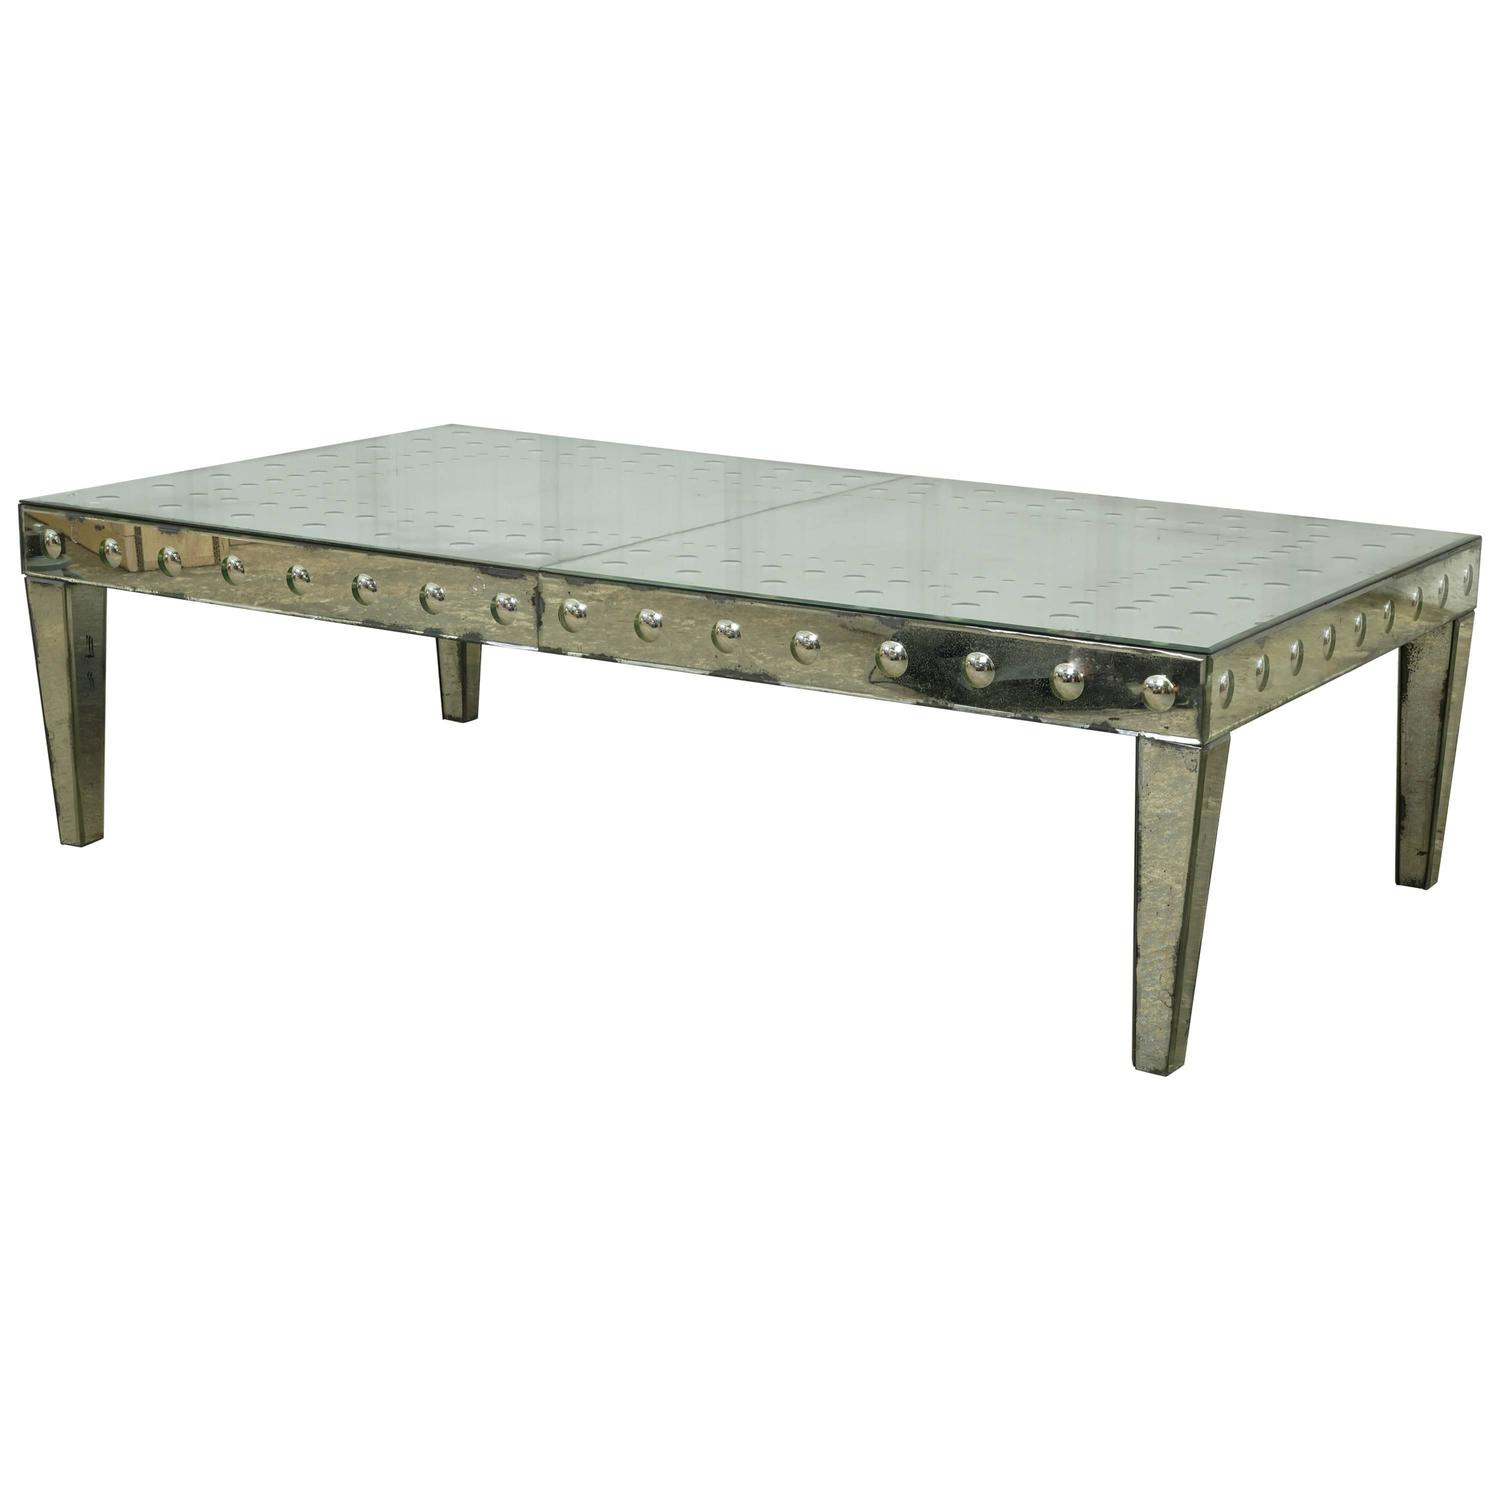 Mirrored Coffee Table Sale: Antiqued Mirror Coffee Table For Sale At 1stdibs